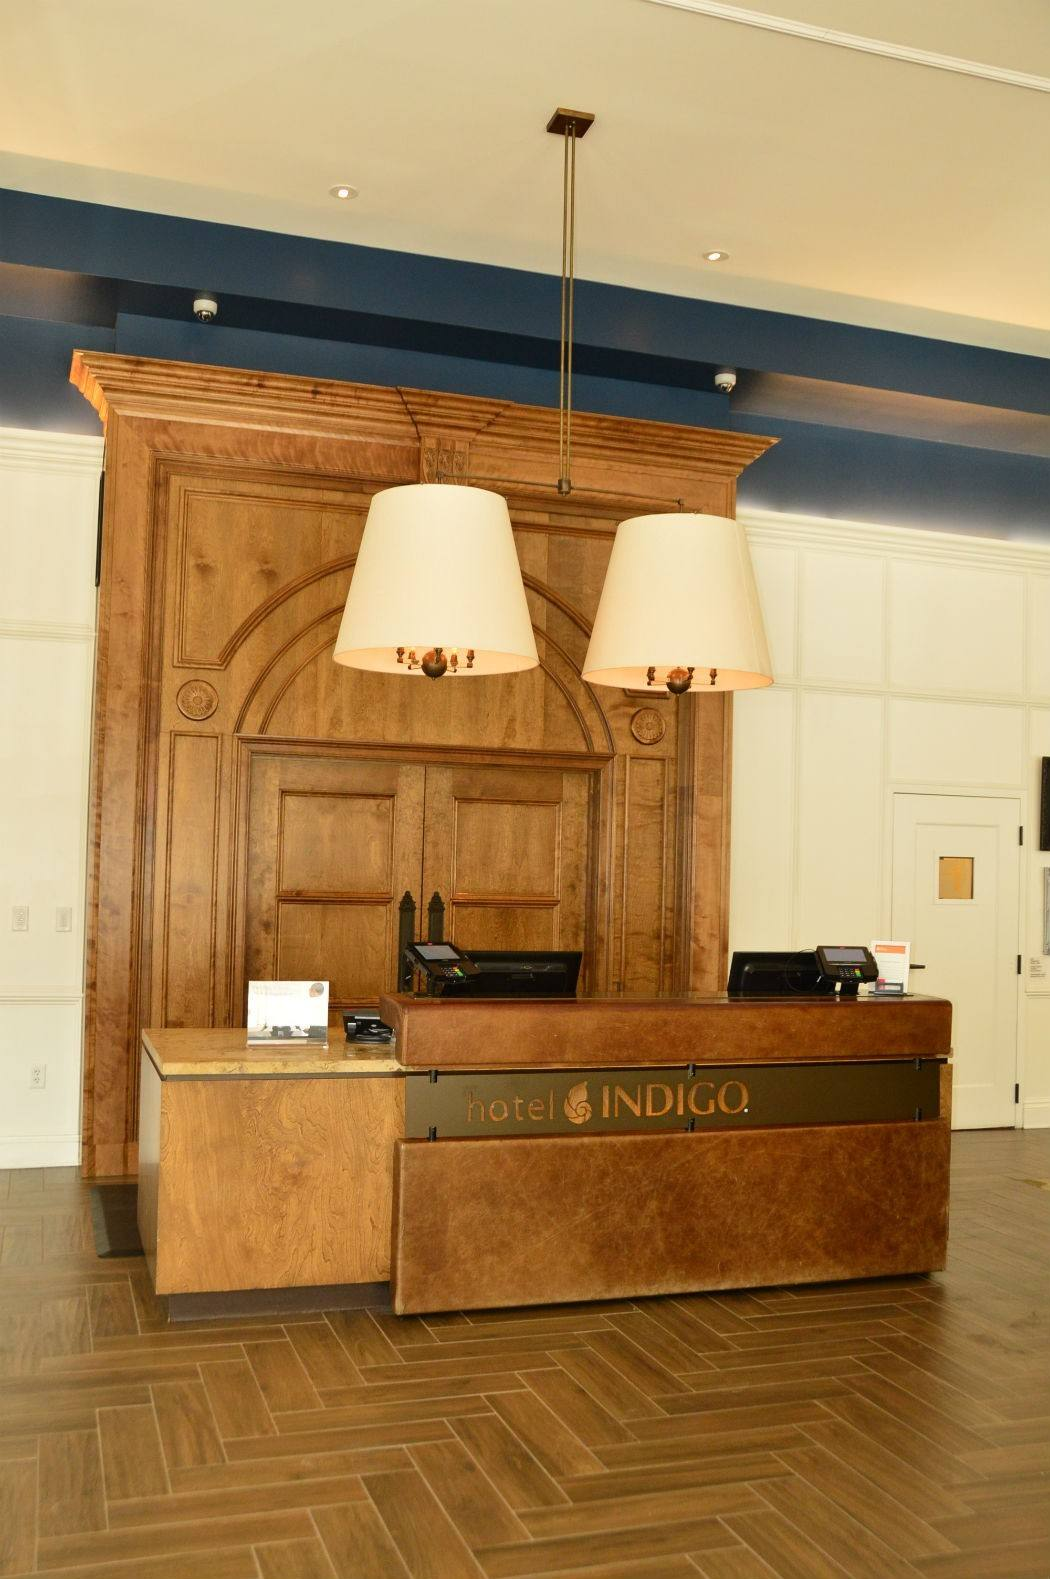 The check-in desk at Hotel Indigo Baltimore